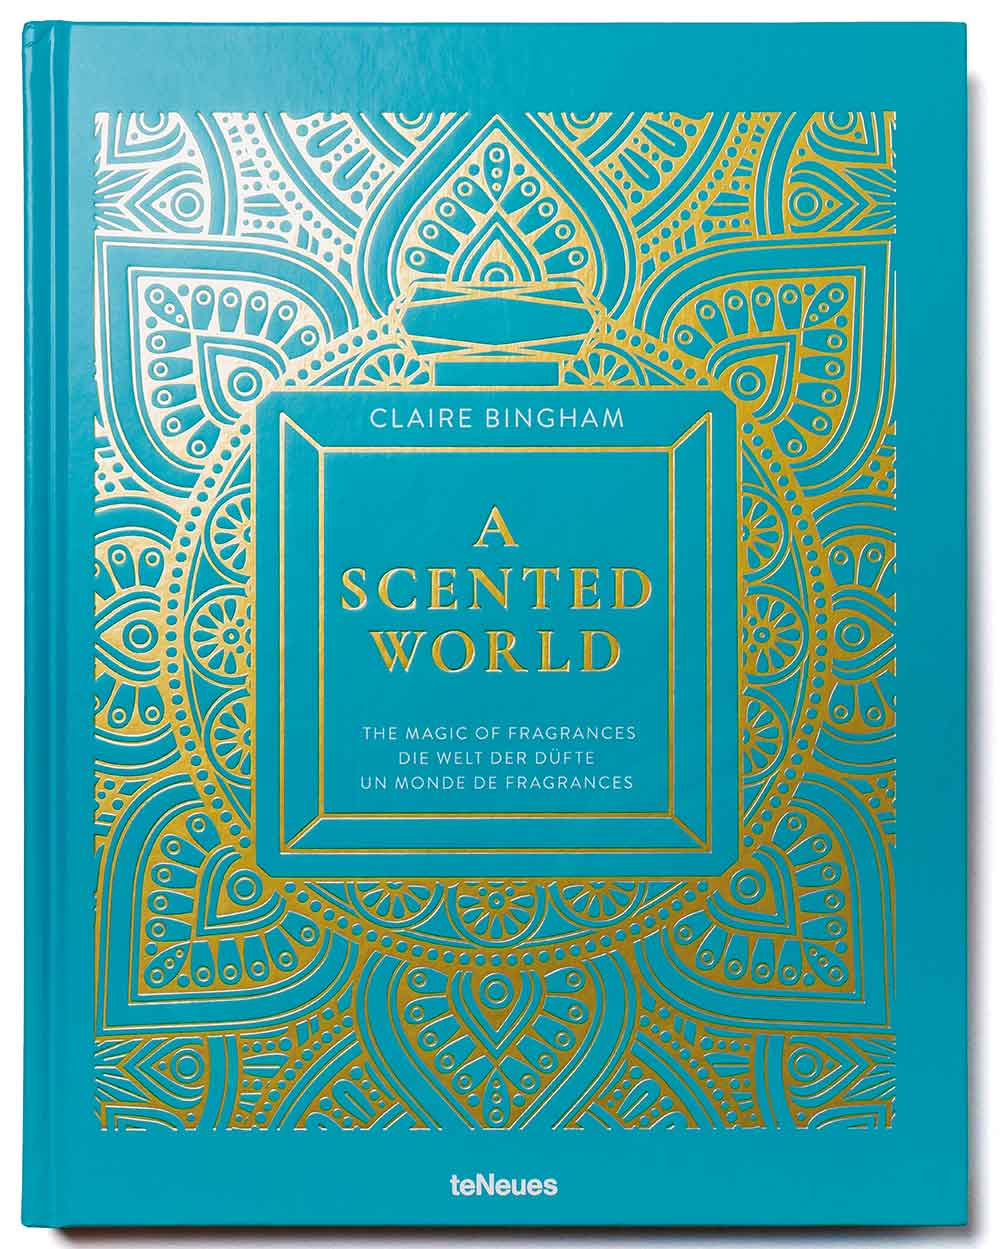 A Scented World, the Magic of Fragrances – Claire Bingham